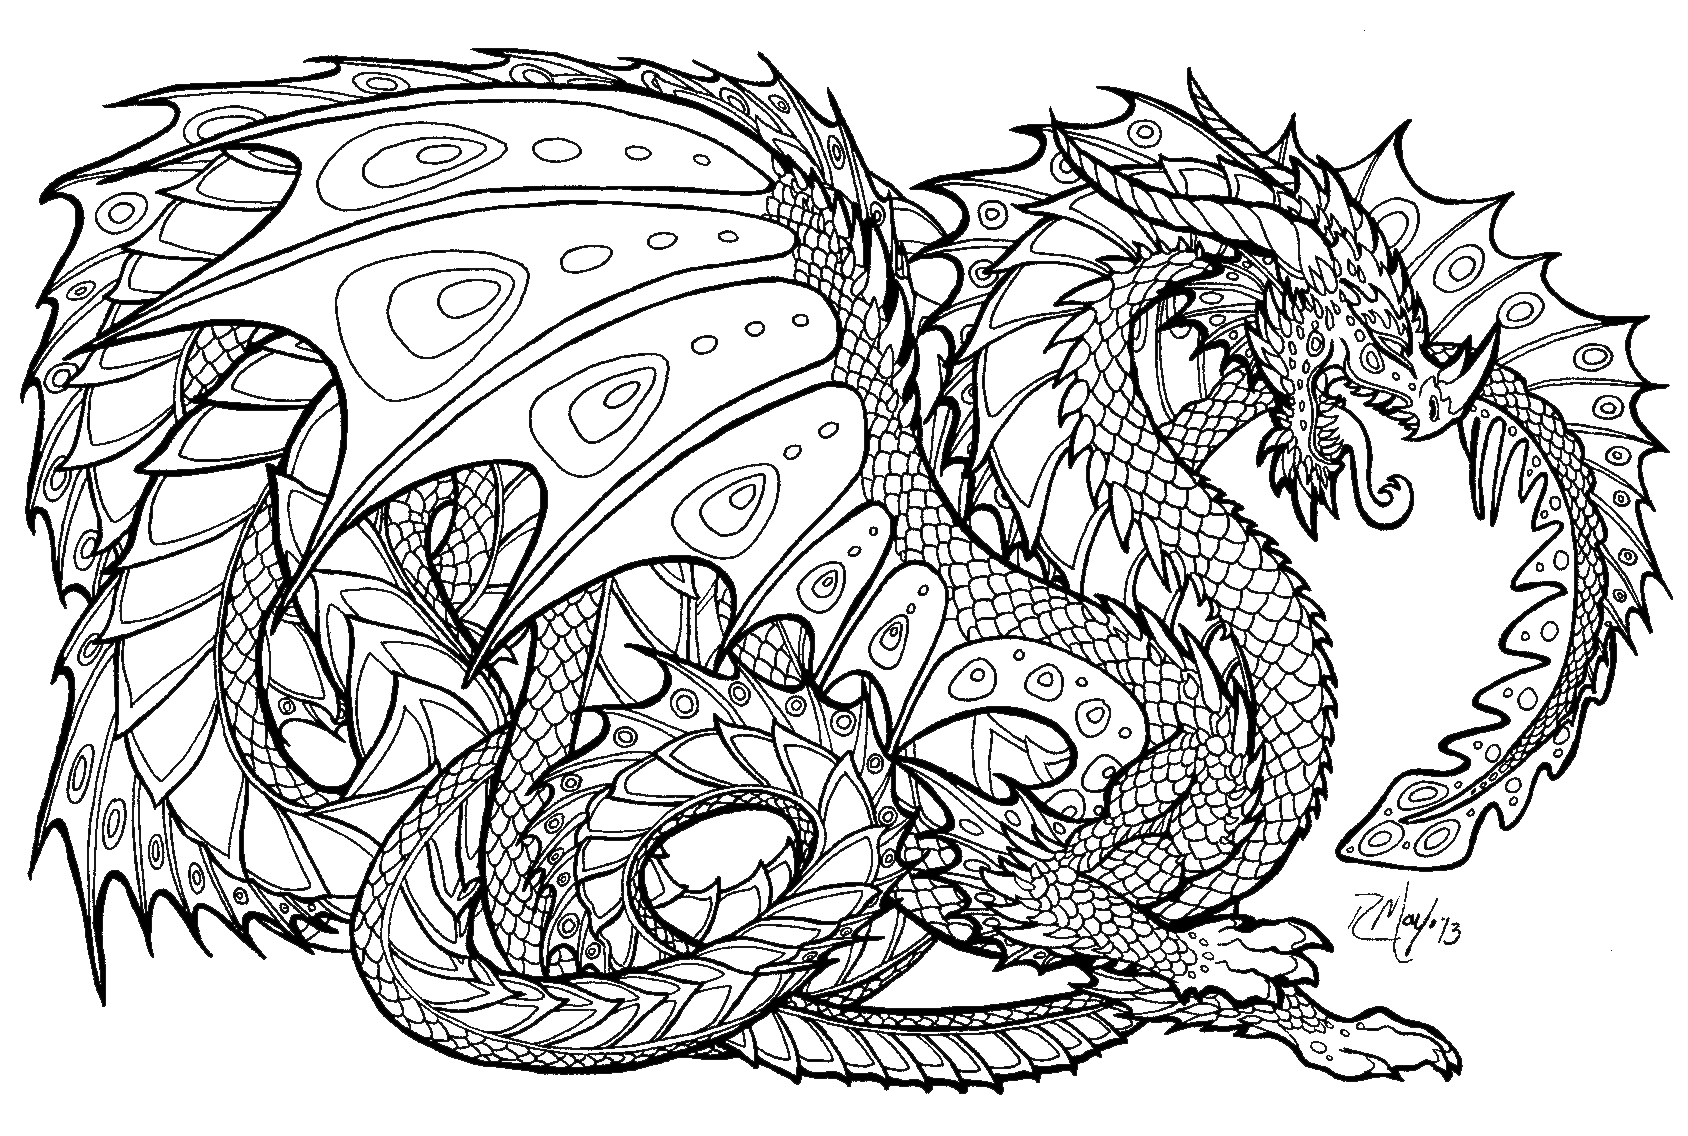 Pa pages to color in - Amazing Of Free Coloring Pages For Adults On Coloring Pa 236